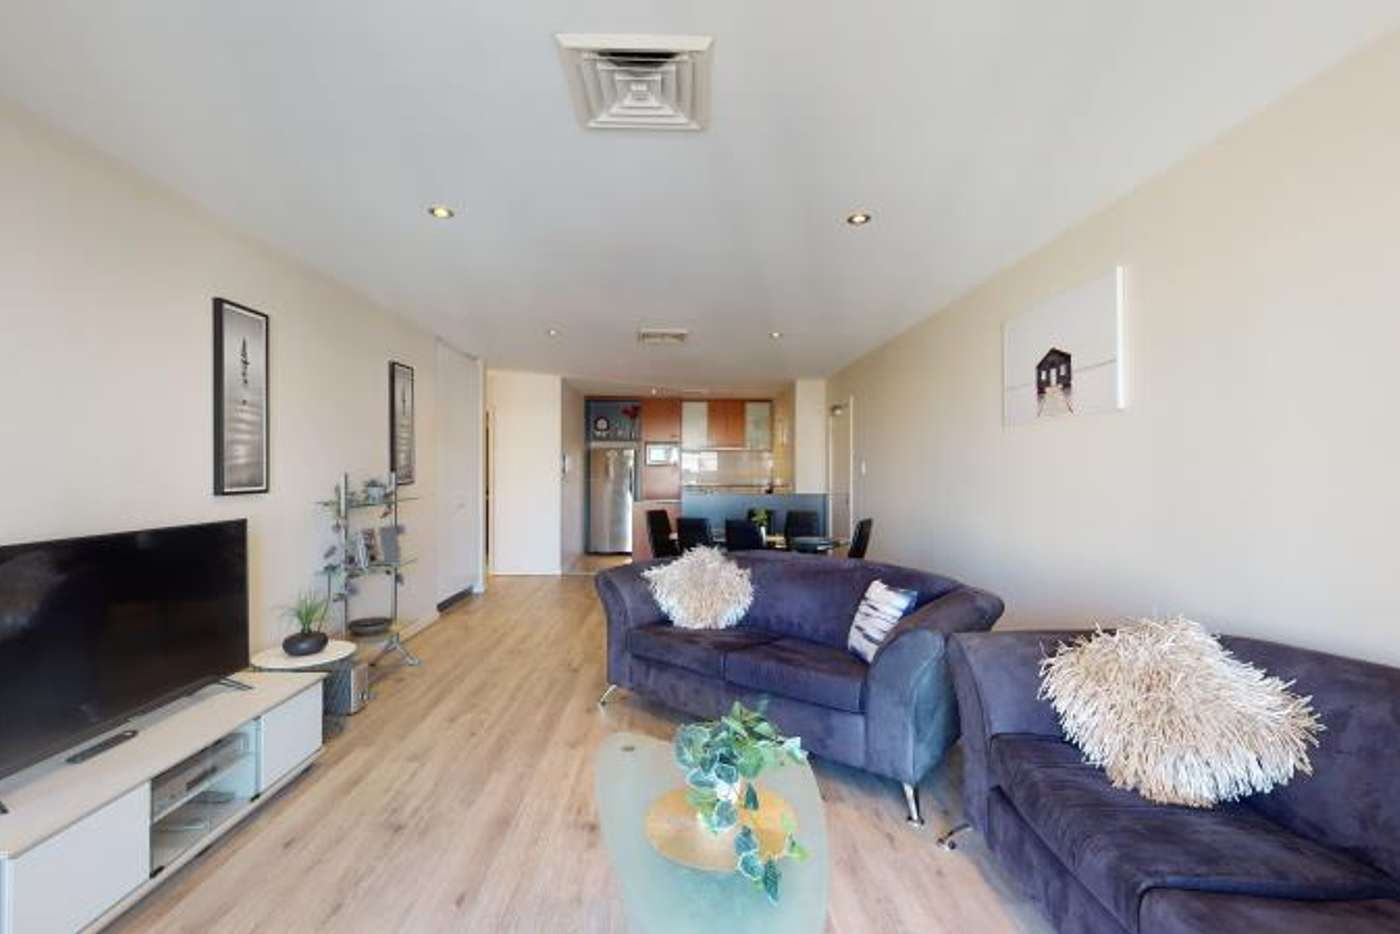 Main view of Homely apartment listing, 51/175 Hay Street, East Perth WA 6004